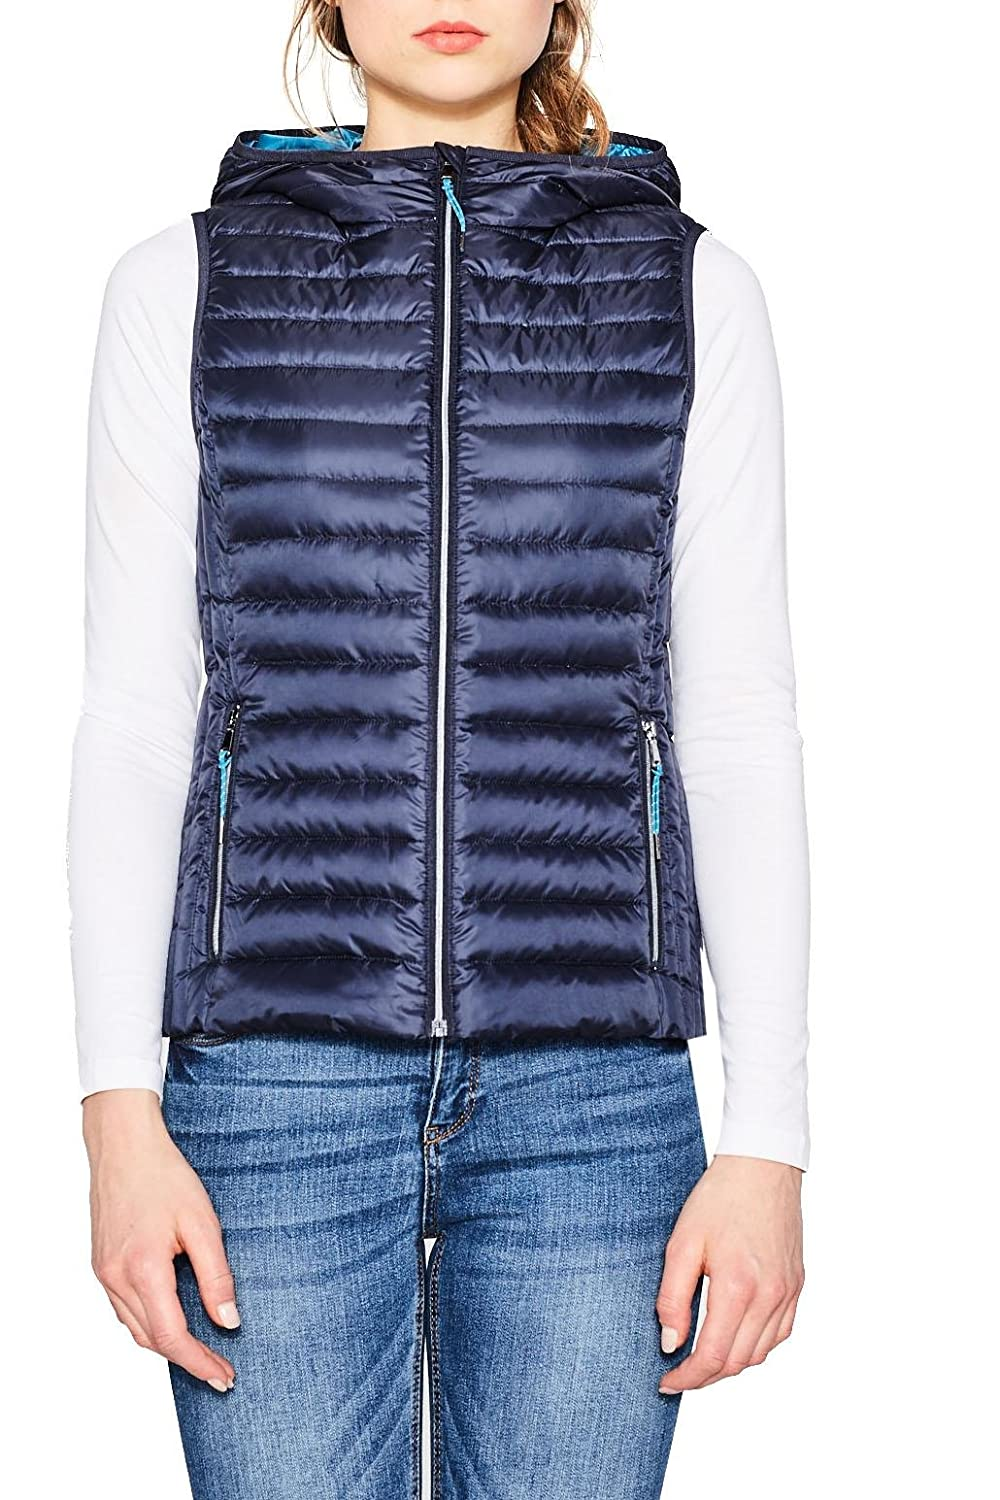 ESPRIT Women's Outdoot Gilet 077EE1H001